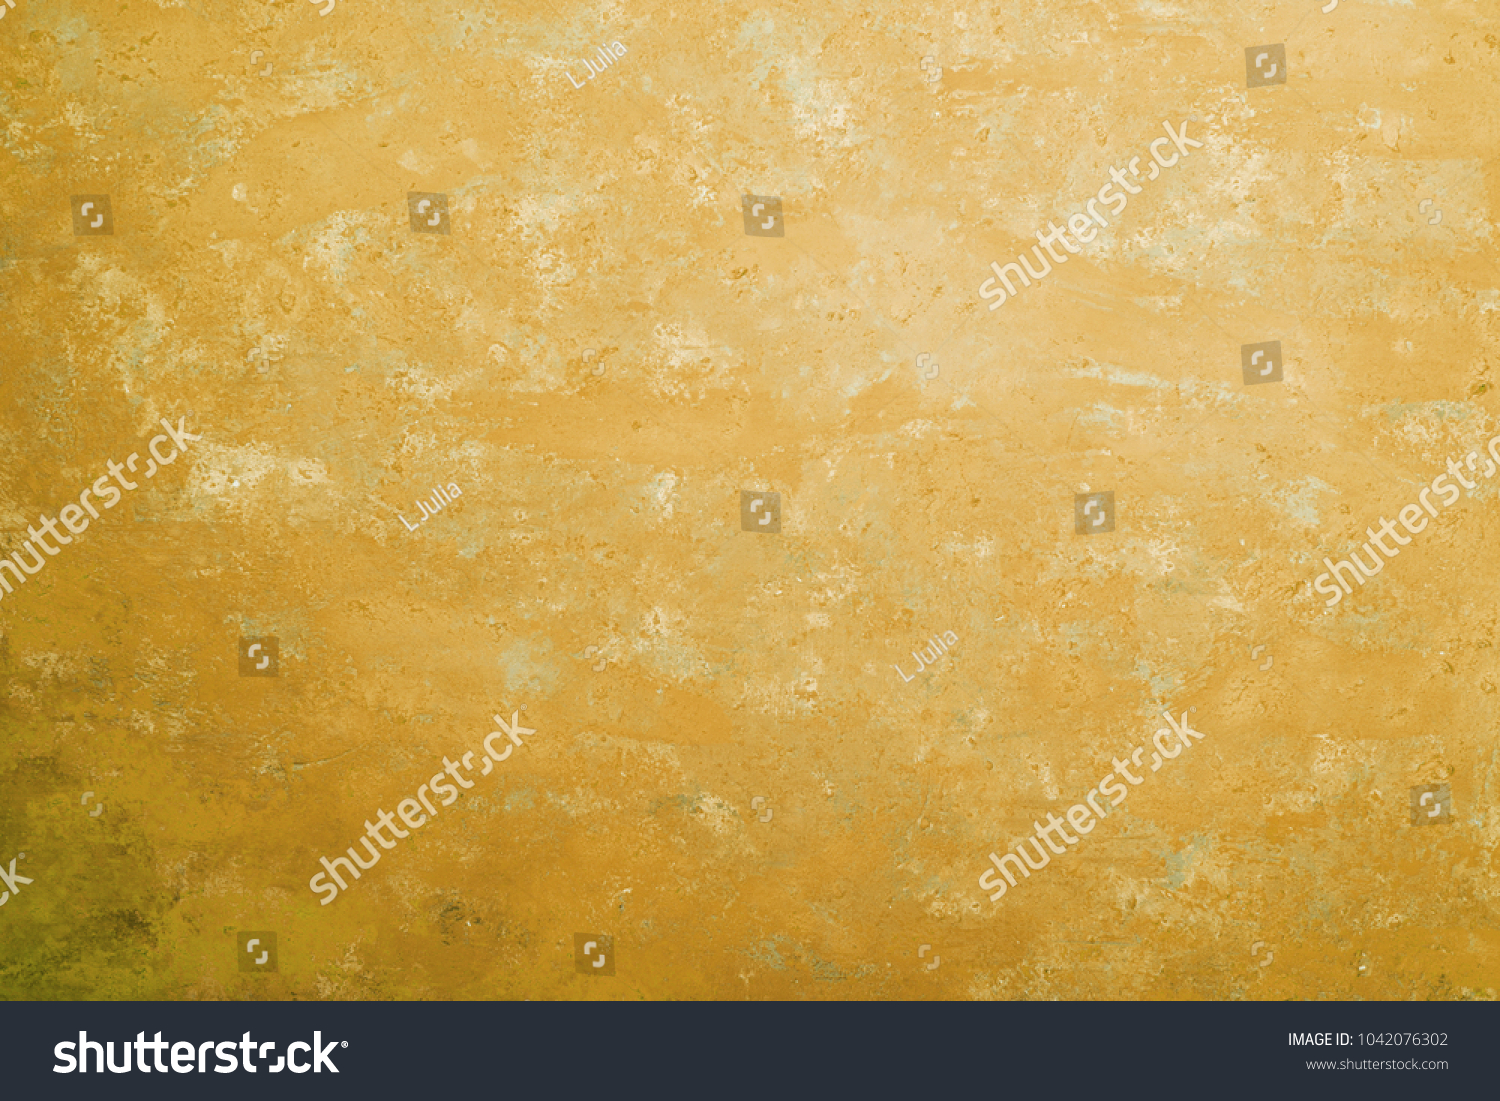 Wall Cement Backgrounds Textures Color Yellow Stock Photo (Edit Now ...